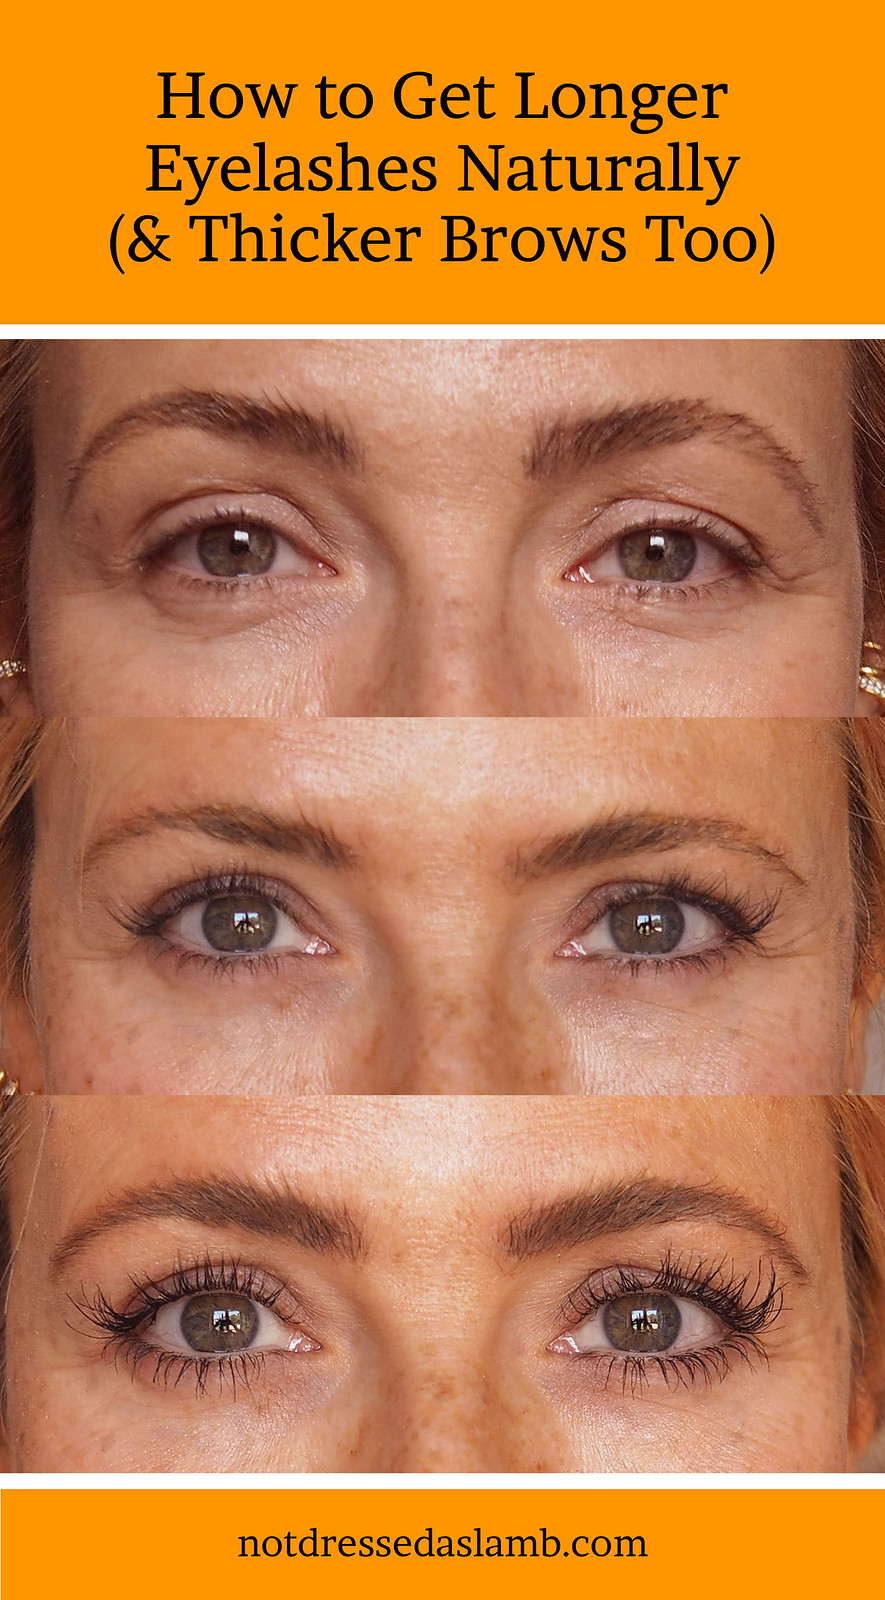 Revitalash review: How to Get Long Eyelashes (and Thicker Brows) Naturally